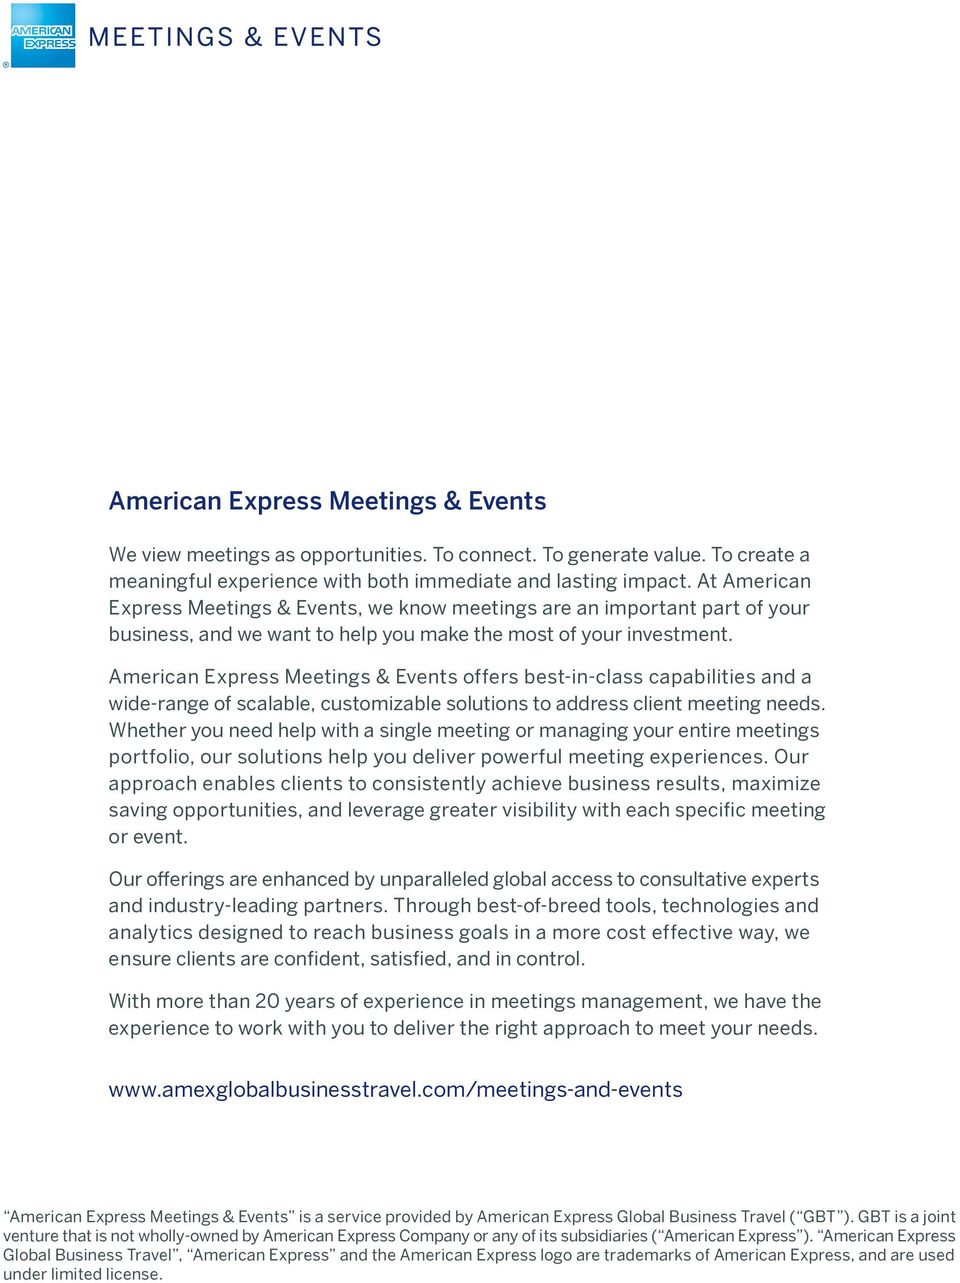 At American Express Meetings & Events, we know meetings are an part of your business, and we want to help you make the most of your investment.